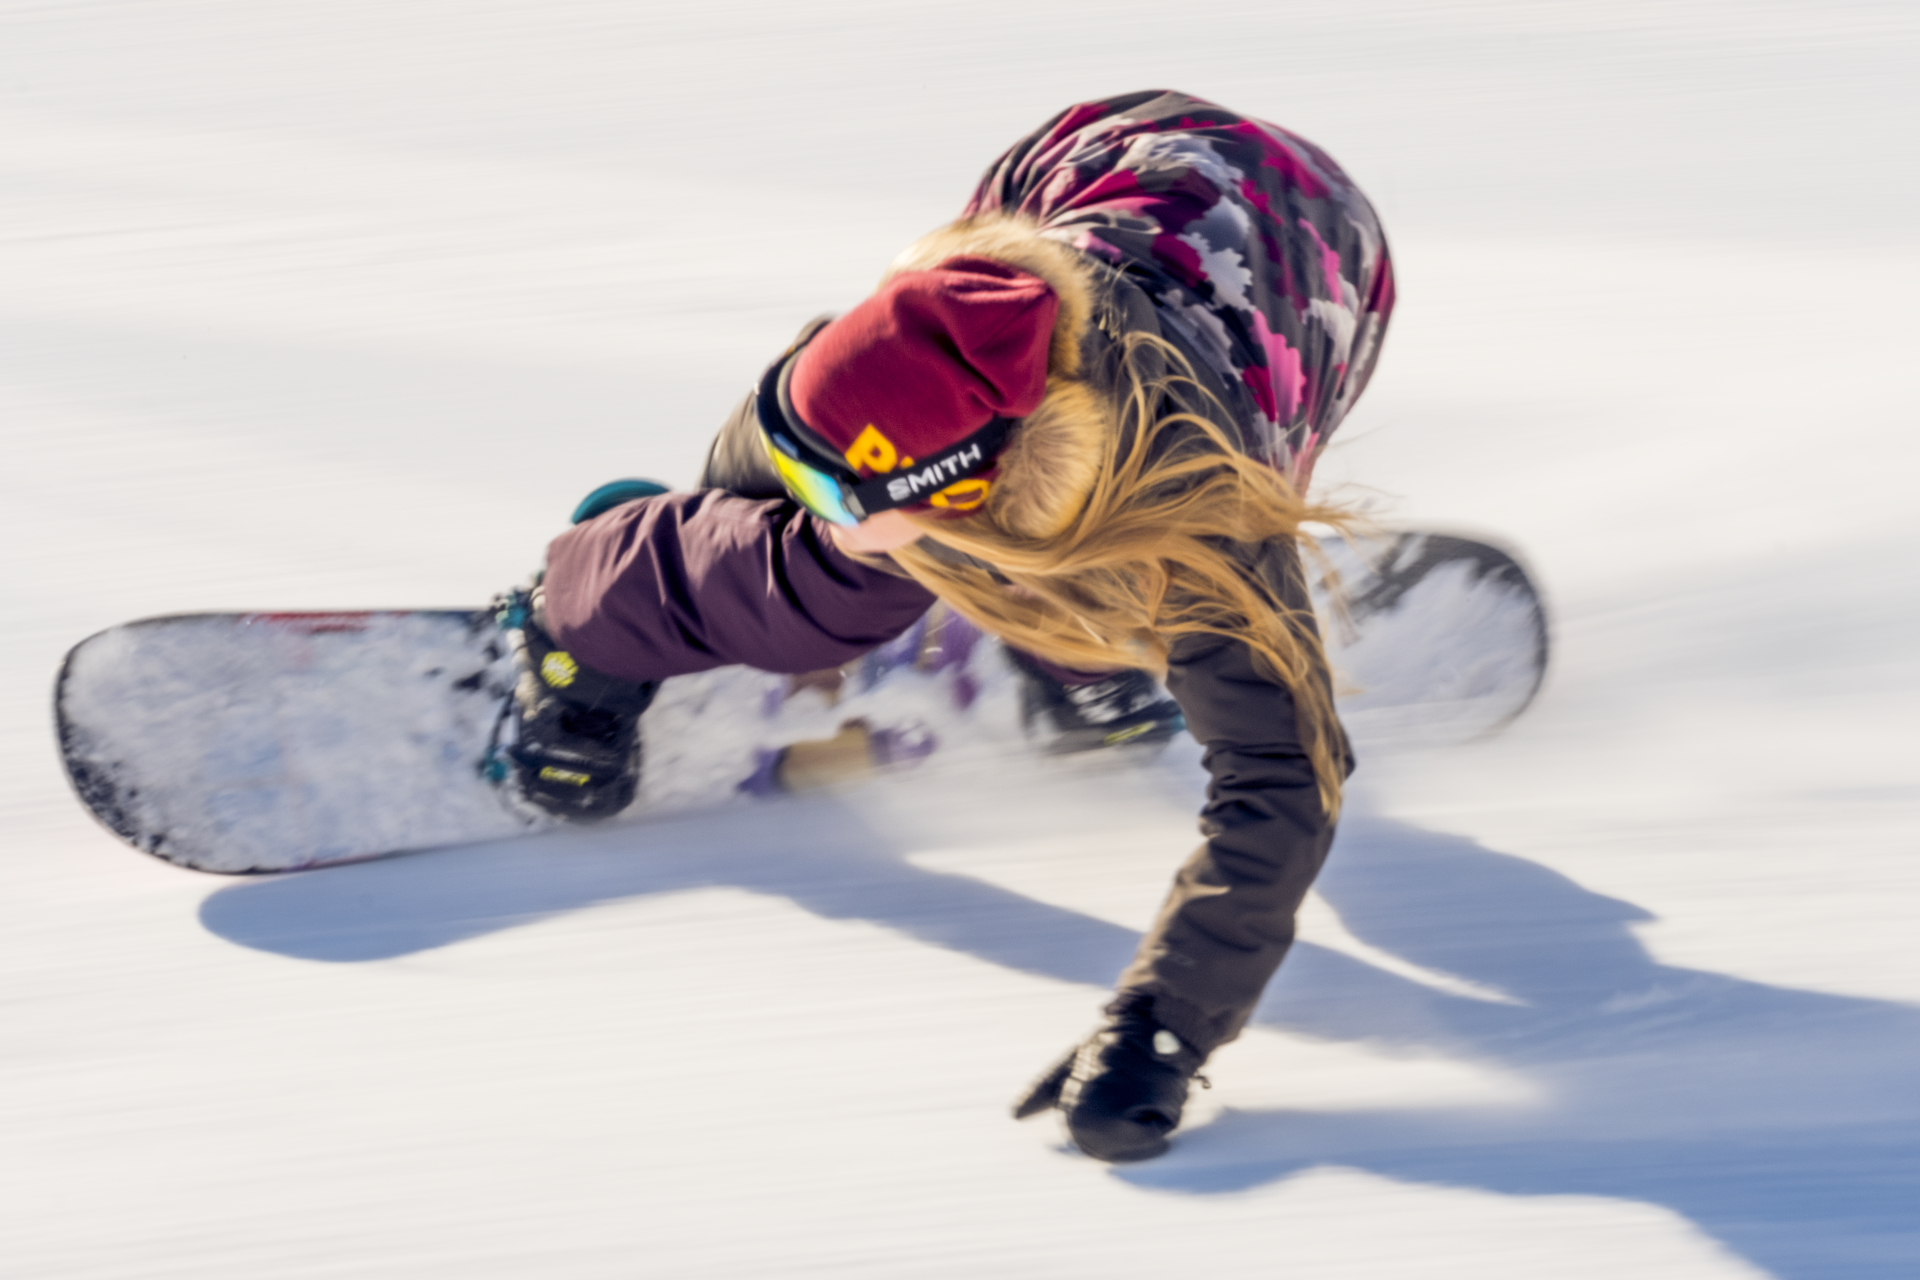 d84d8dba64e The best women s ski and snowboard gear for winter 2018 2019